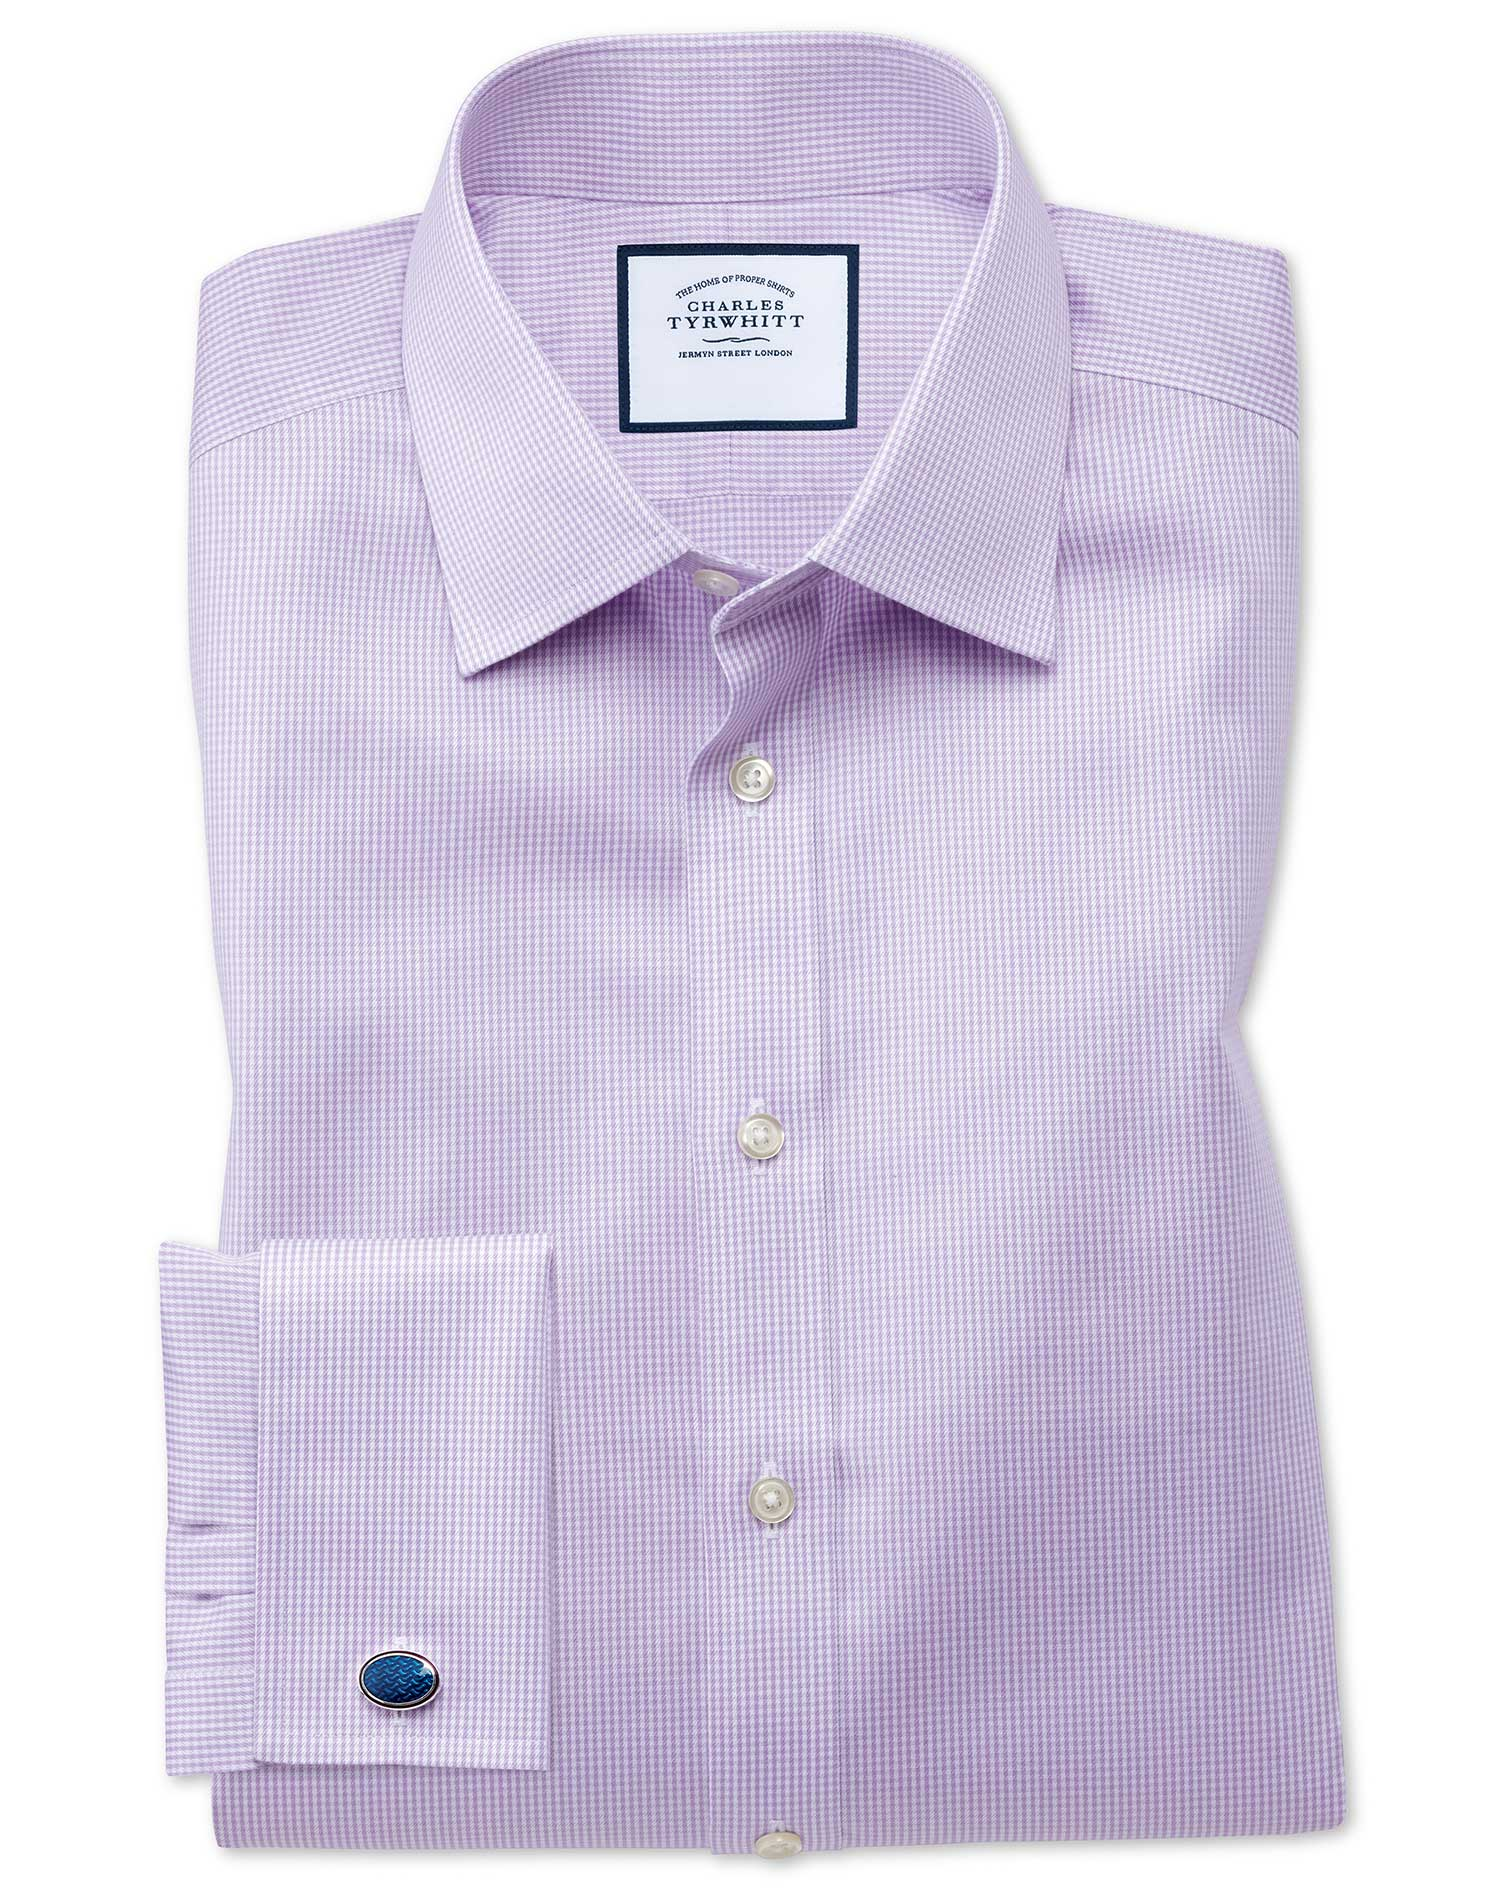 Slim Fit Non-Iron Puppytooth Lilac Cotton Formal Shirt Single Cuff Size 16/35 by Charles Tyrwhitt